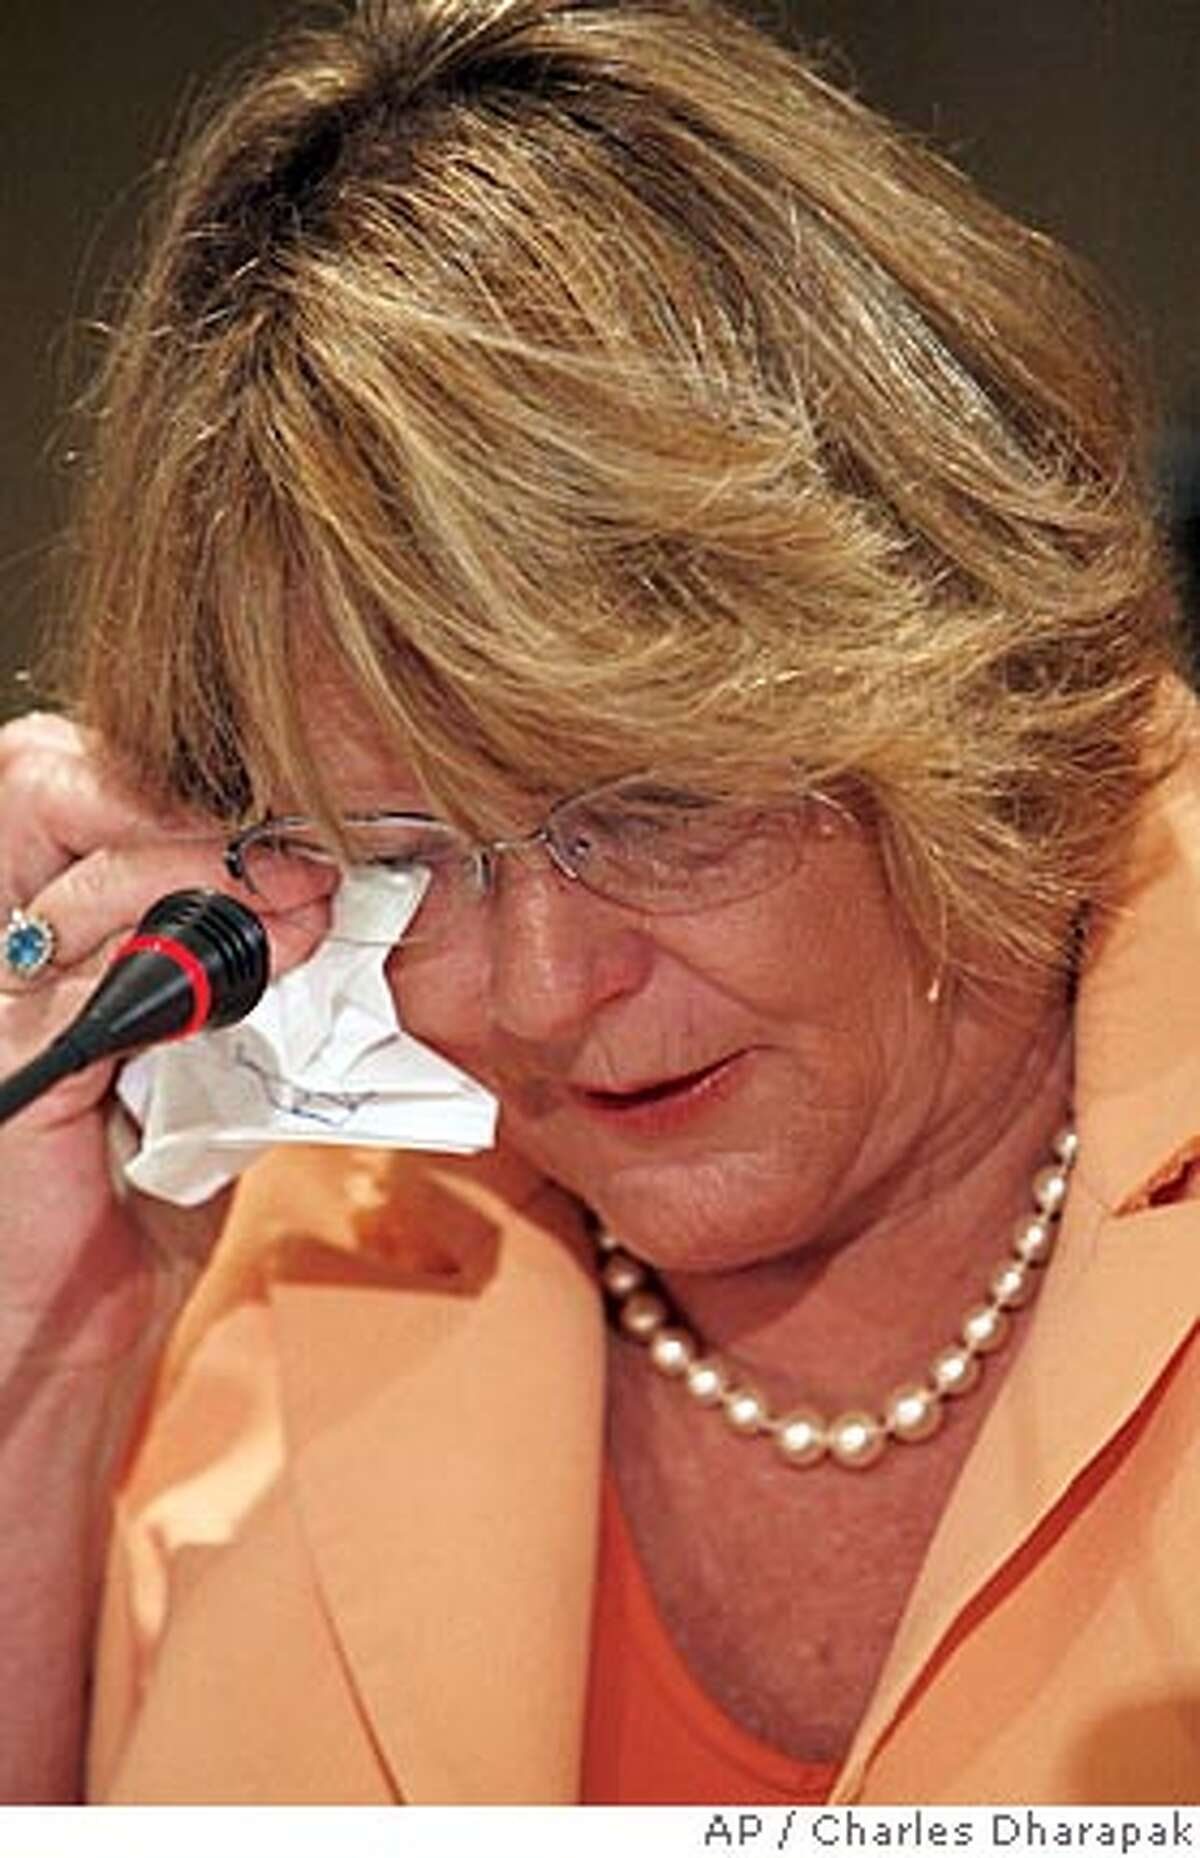 Karen L. Thurman, chair of the Florida Democratic Party, wipes a tear while testifying before the Democratic National Committee's Rules and Bylaws Committee in Washington, Saturday, Aug. 25, 2007. (AP Photo/Charles Dharapak)